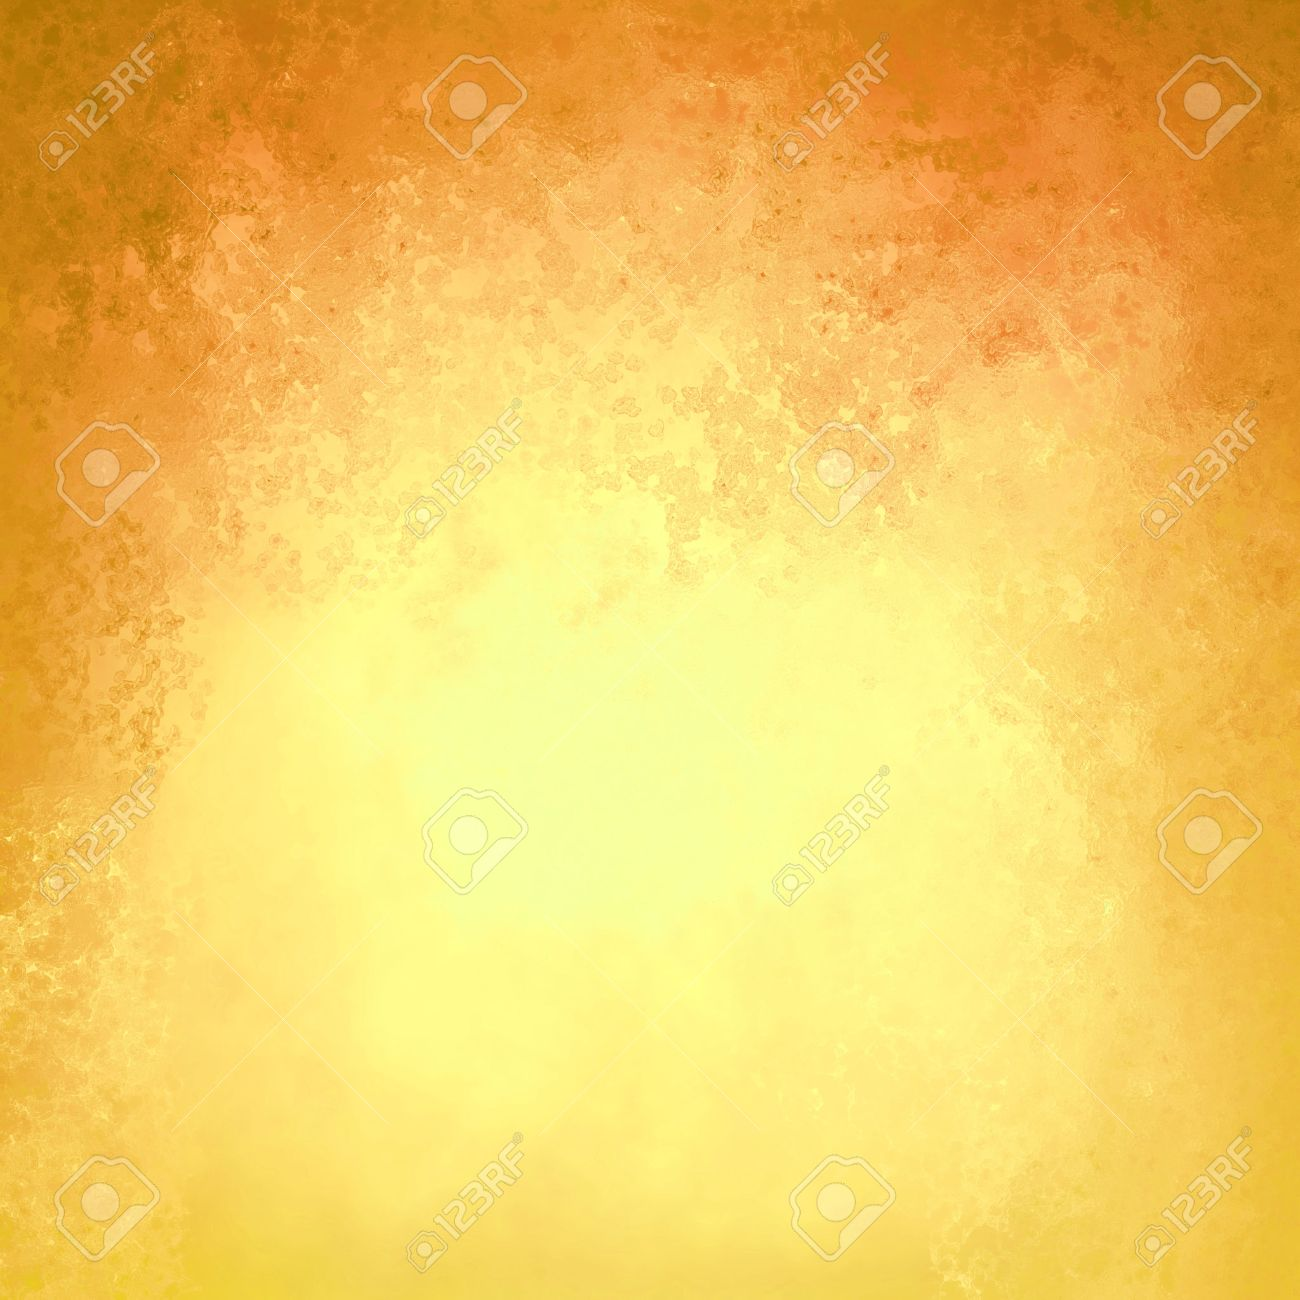 Yellow And Brown Orange Background With Dark Top Border And Bright